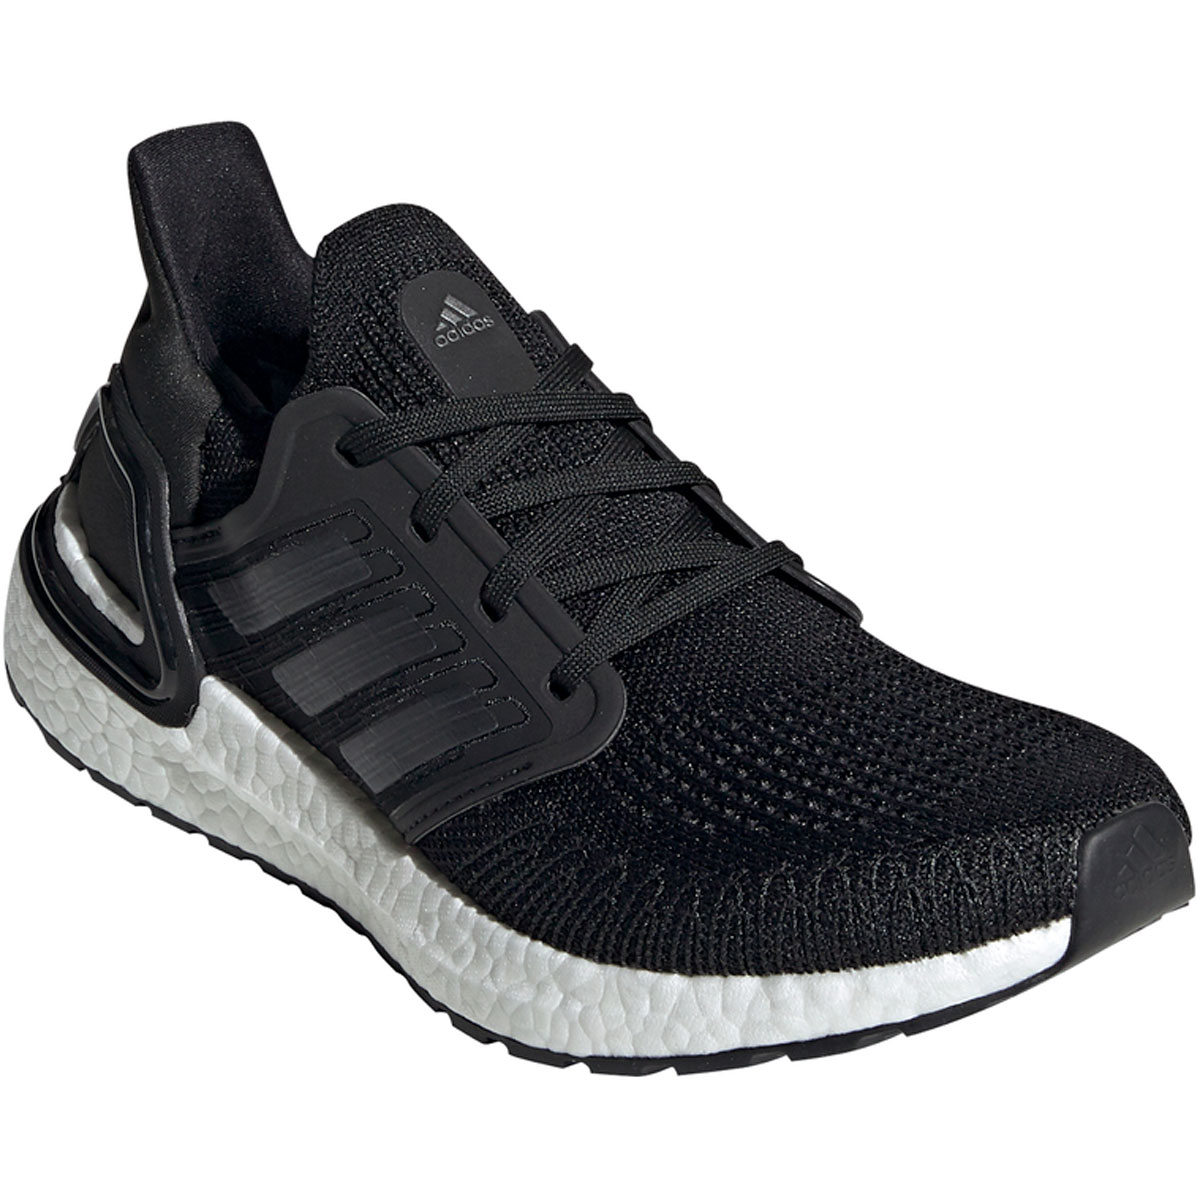 Women's Adidas UltraBOOST 20 Running Shoe - Color: Core Black/Feather White (Regular Width) - Size: 5, Core Black/Feather White, large, image 3